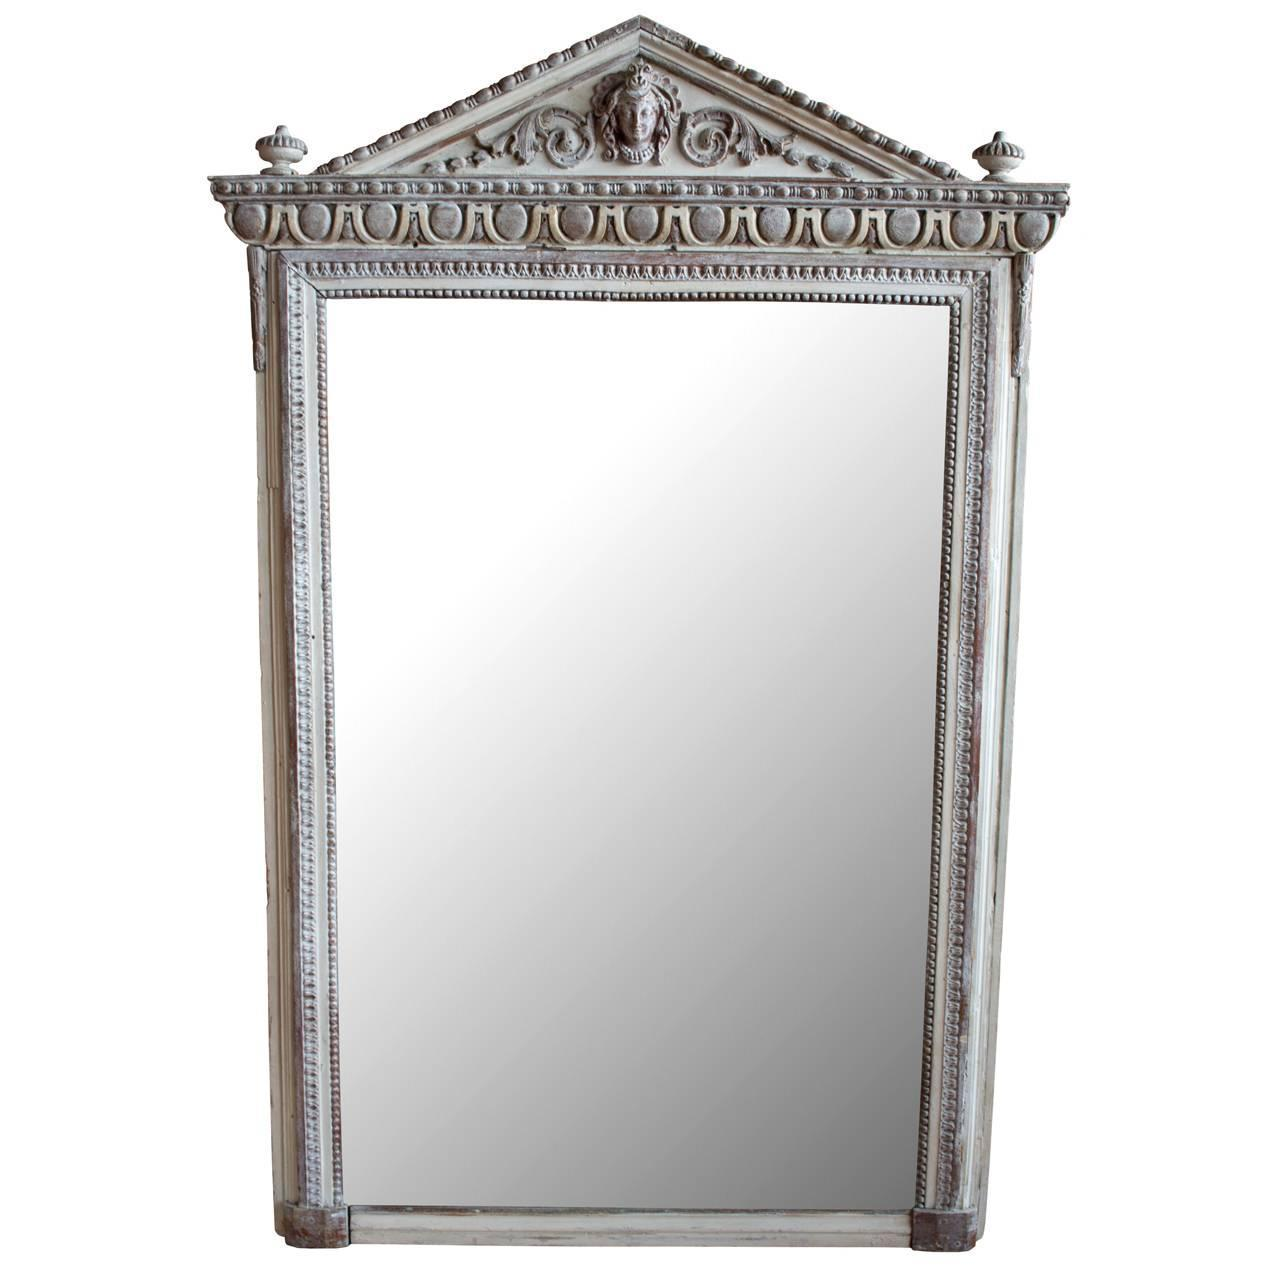 Antique french mirror at 1stdibs for Antique french mirror